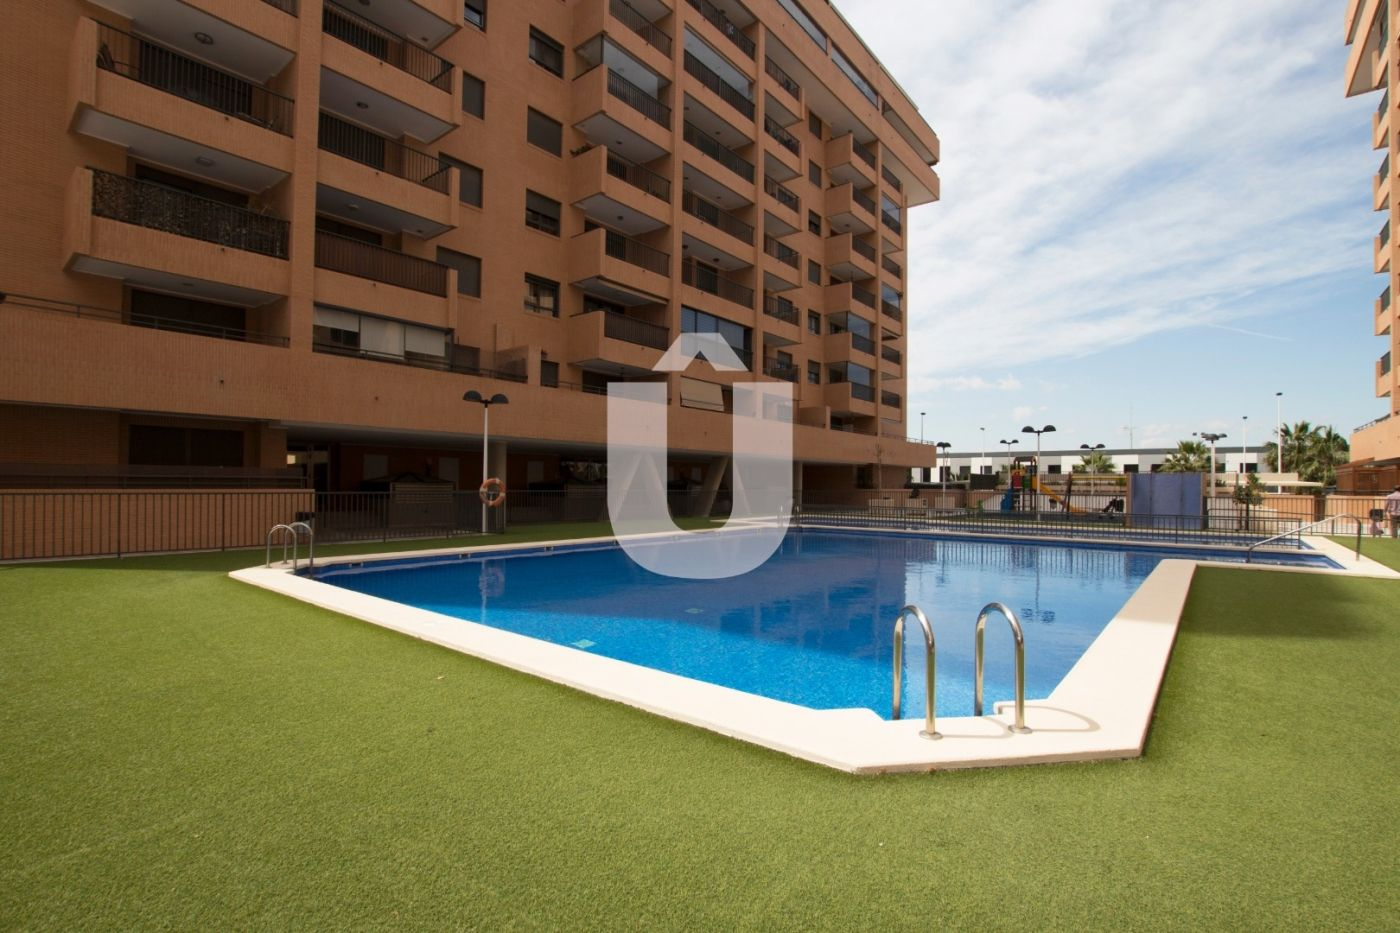 Location Appartement  Paseo sierra de espadán. Piso con ascensor, parking, piscina, aire acondicionado y vistas